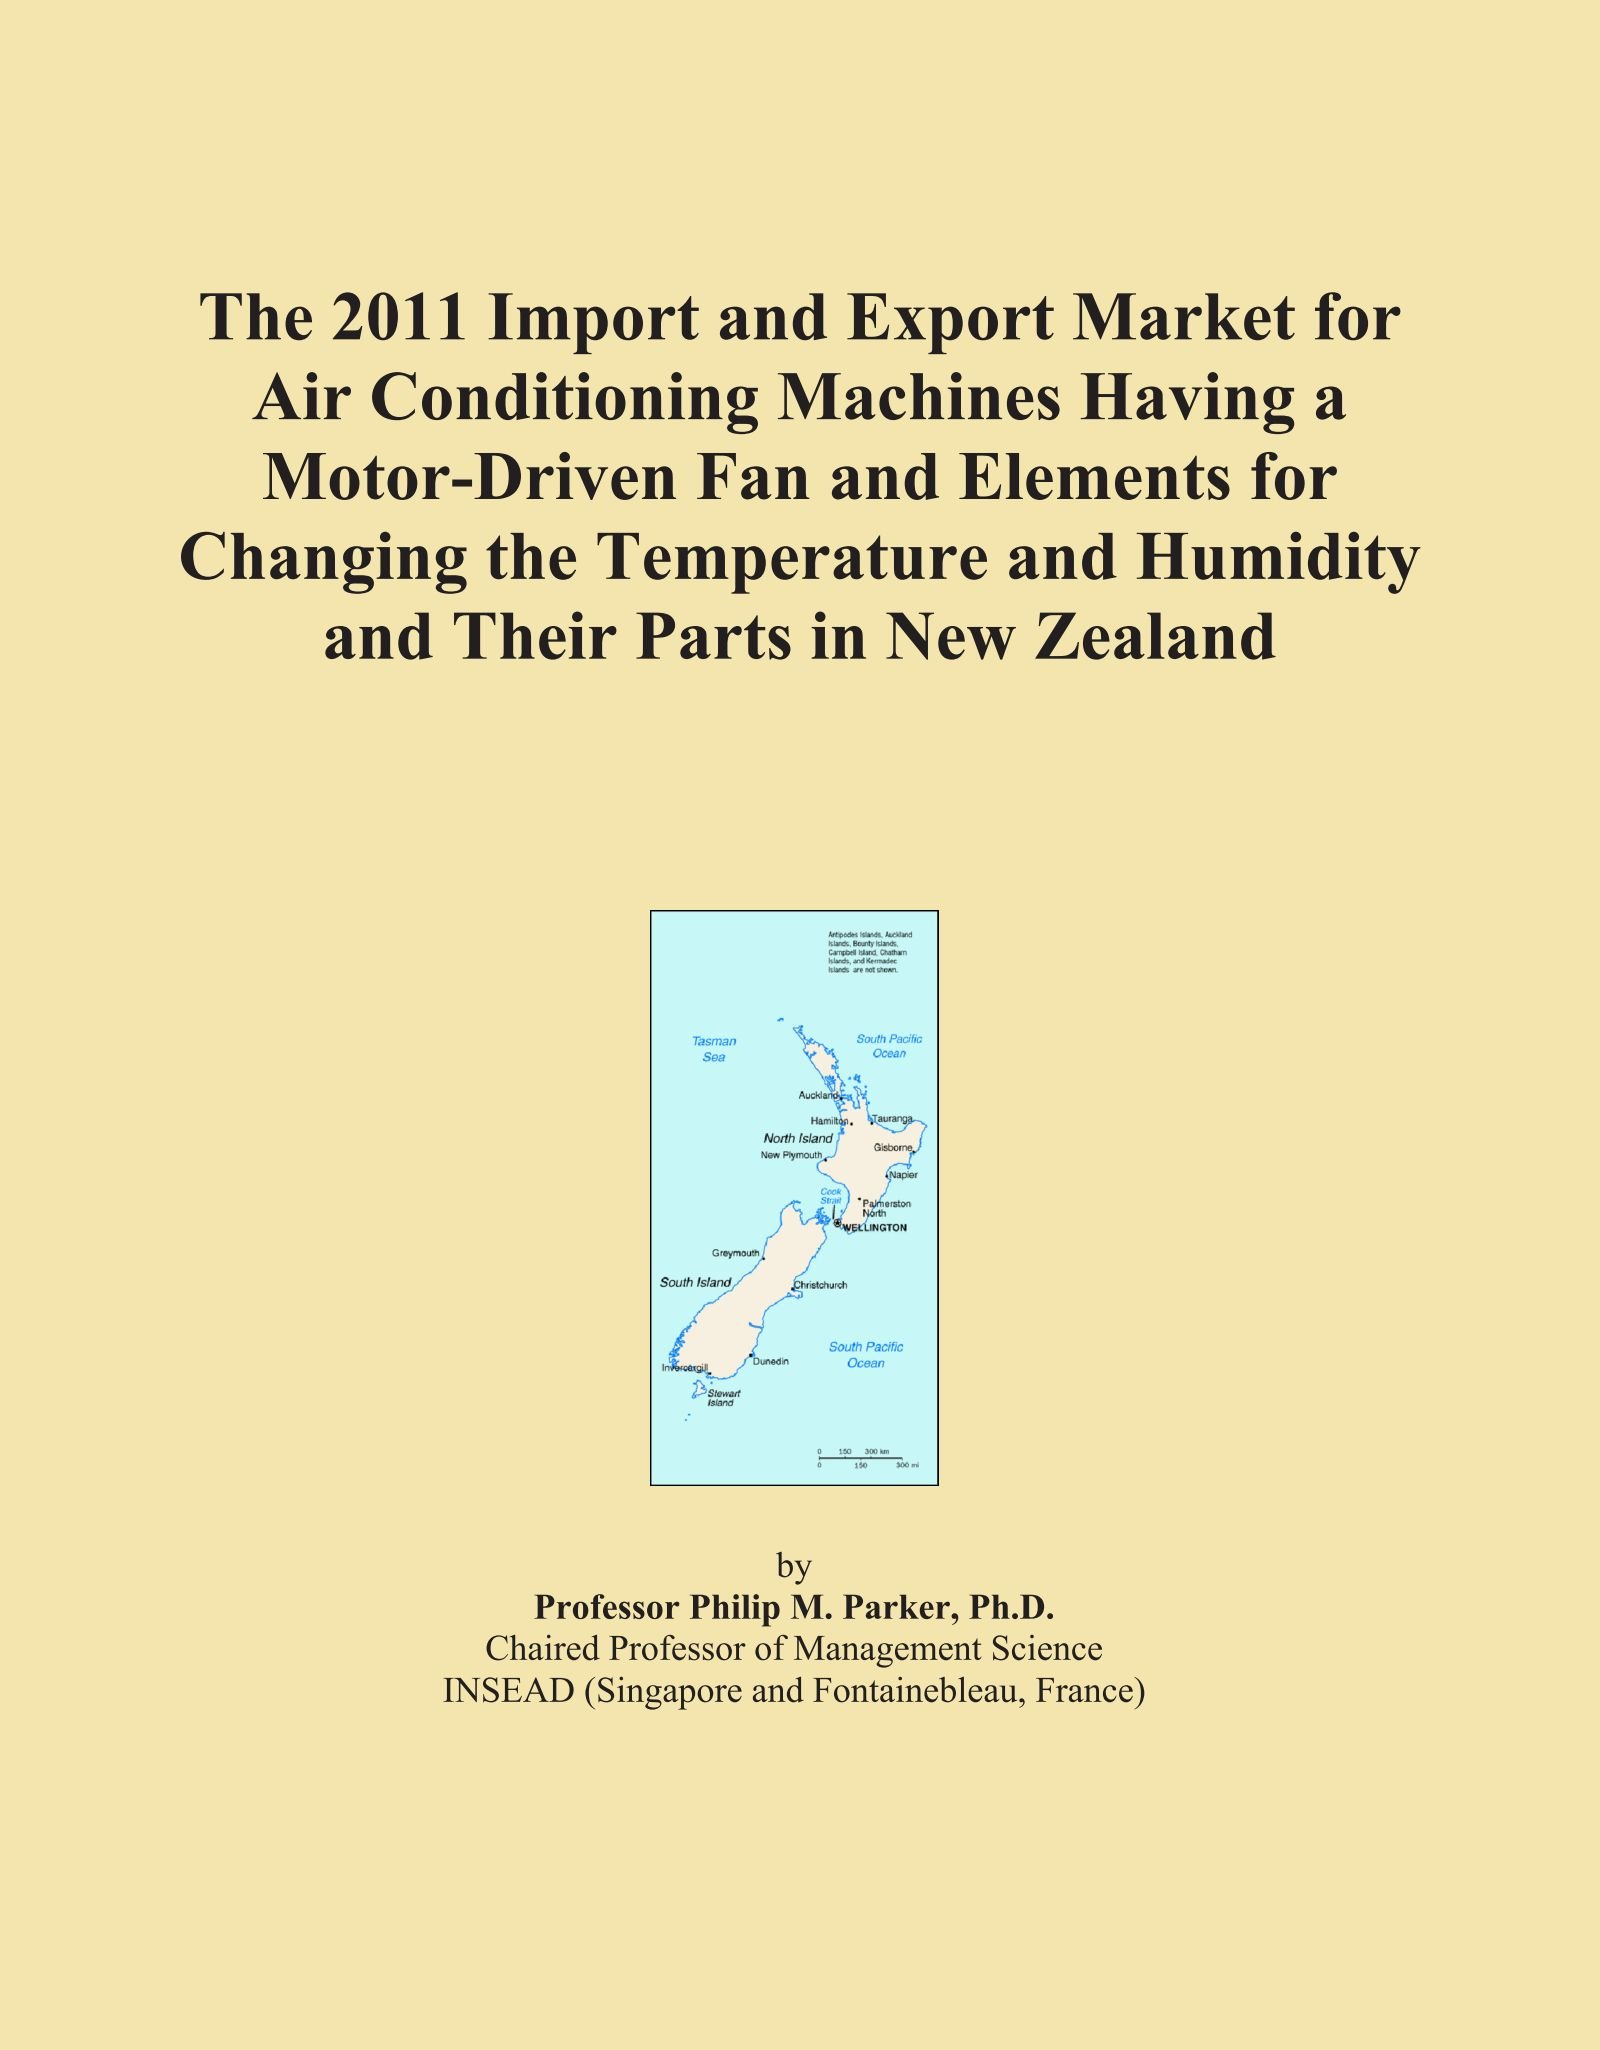 Download The 2011 Import and Export Market for Air Conditioning Machines Having a Motor-Driven Fan and Elements for Changing the Temperature and Humidity and Their Parts in New Zealand ebook